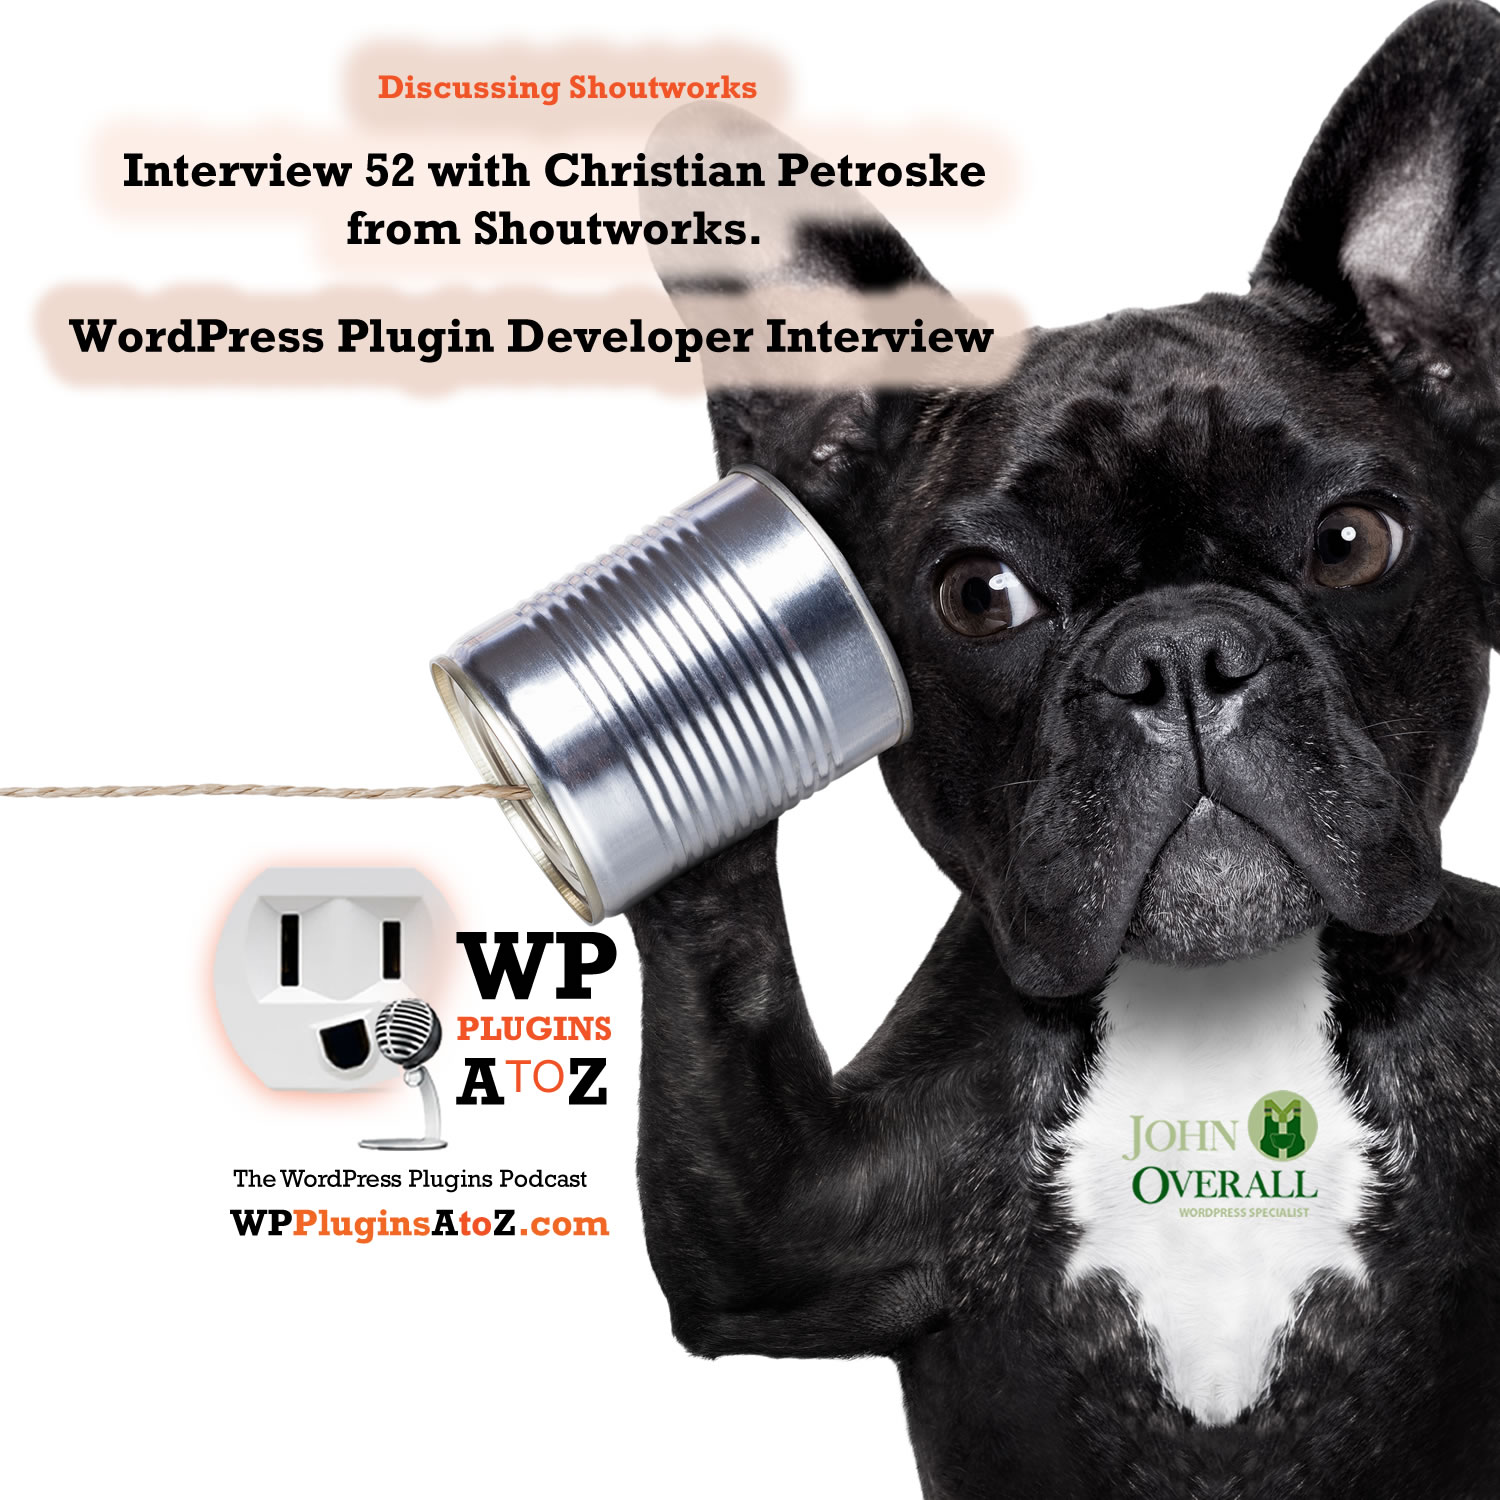 Today's interview is with Christian Petroske from ShoutWorks ShoutWorks is not only the name of the company, but also the name of the plugin that was talked about in today's interview.